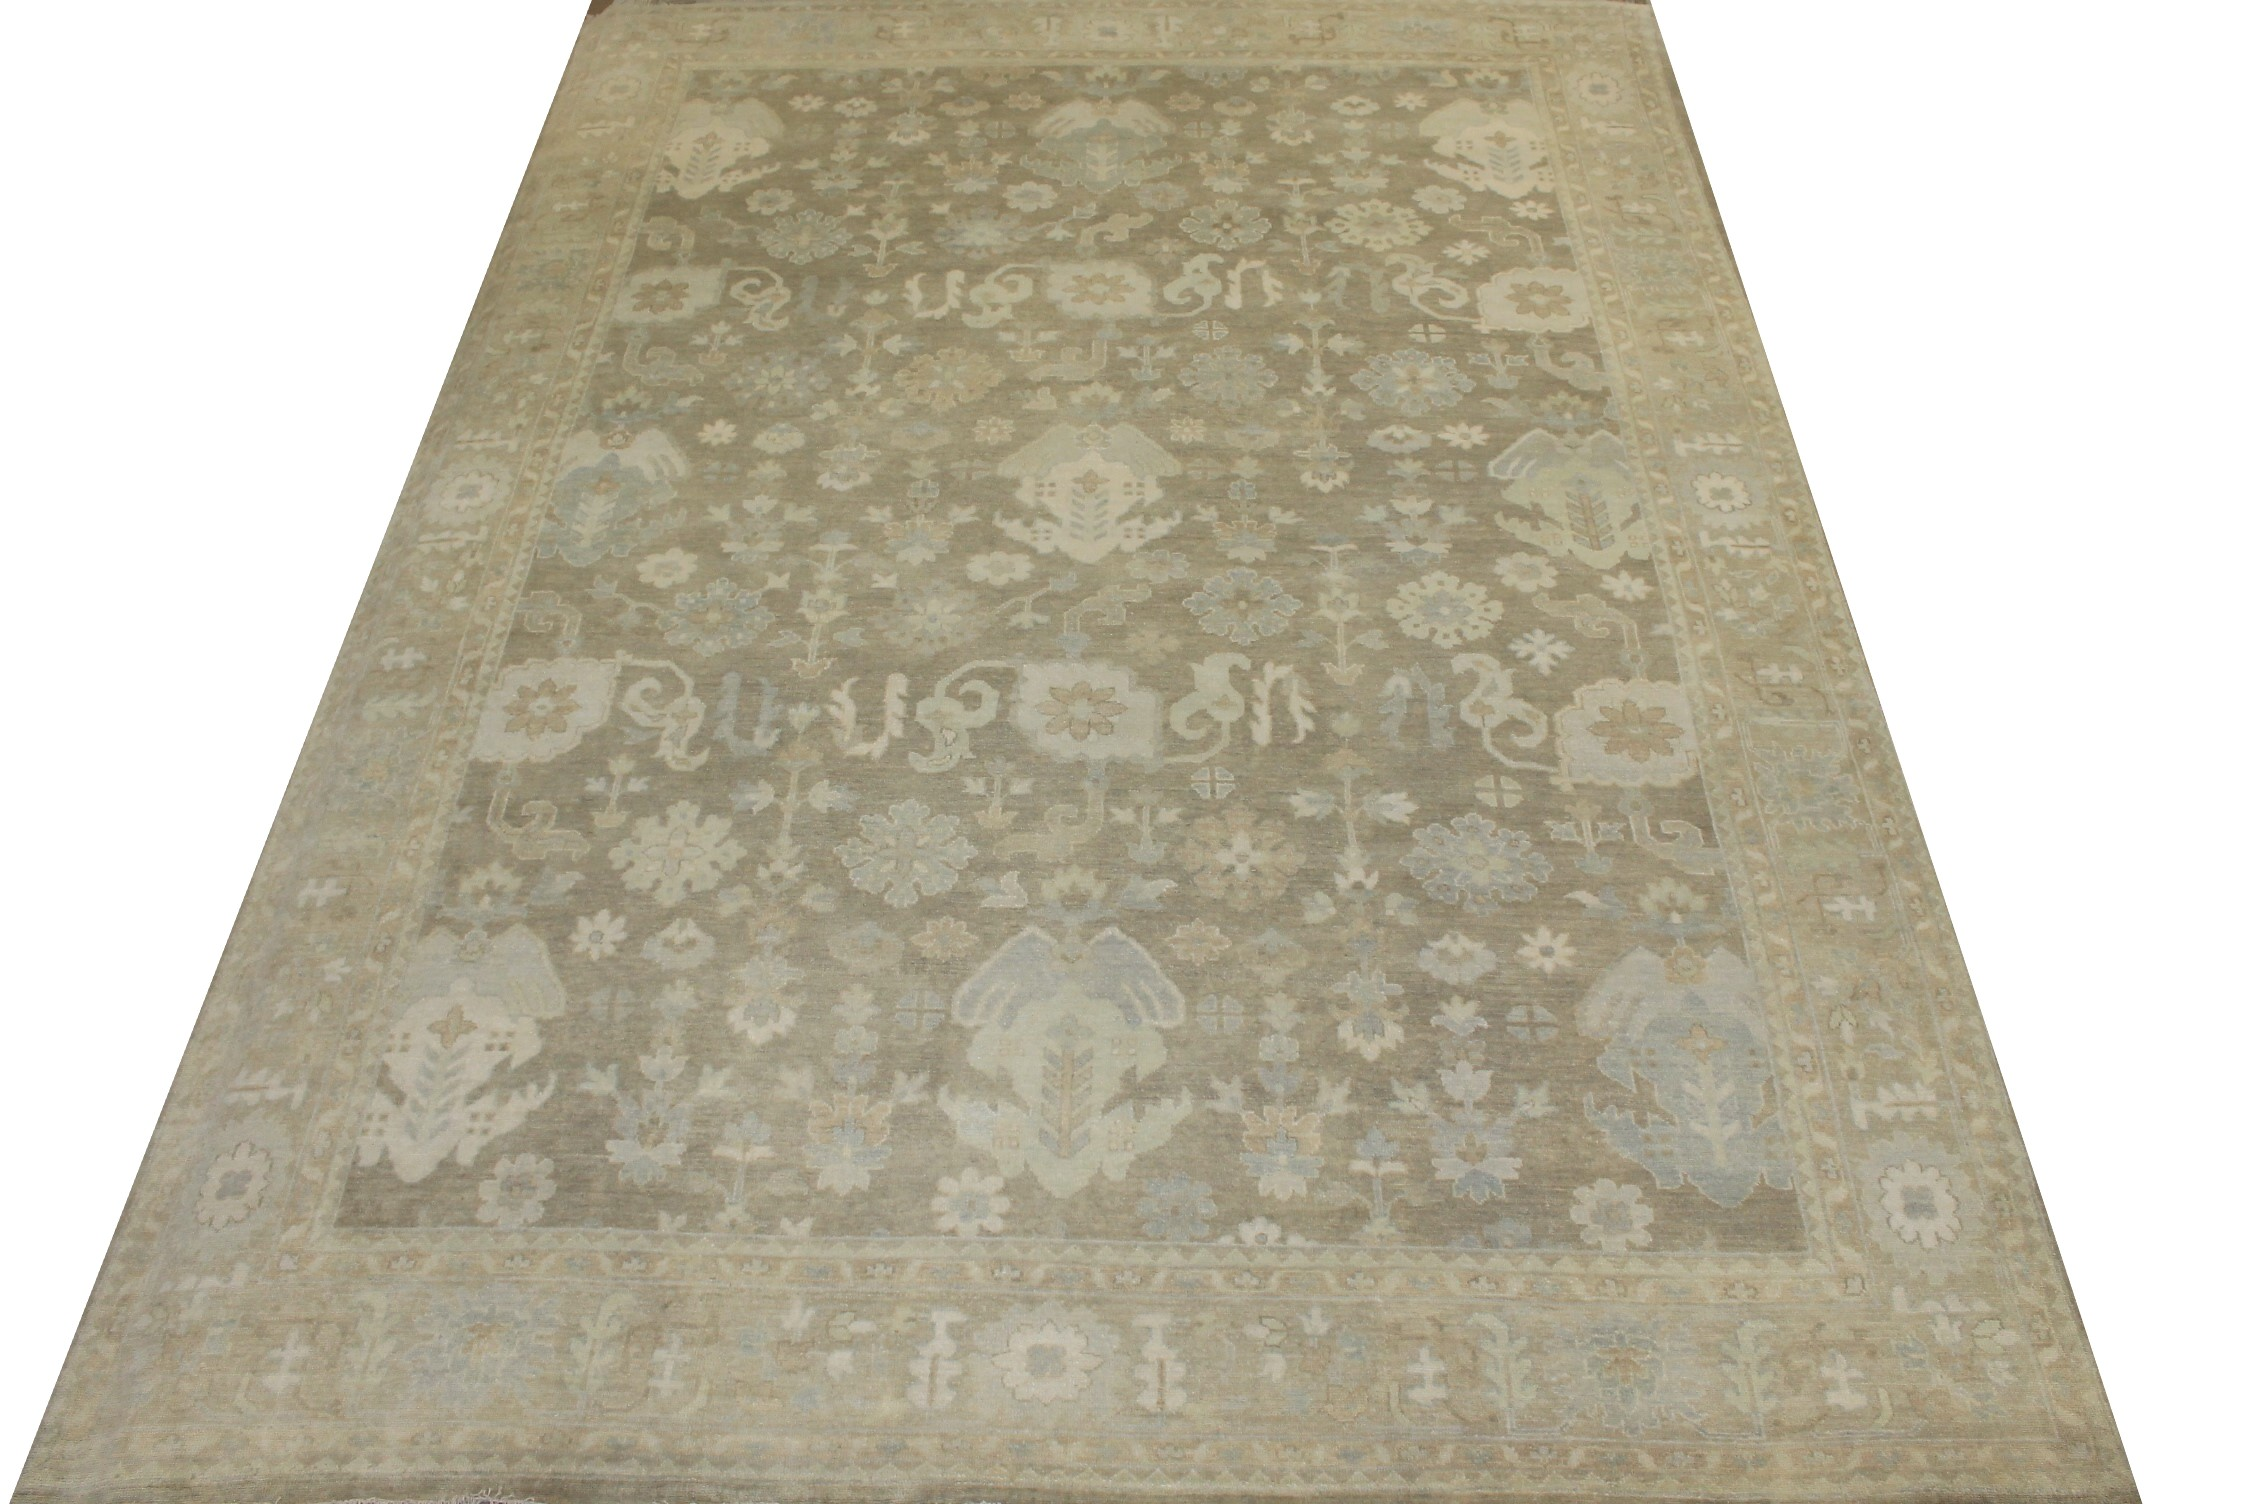 10x14 Oushak Hand Knotted Wool Area Rug - MR024300